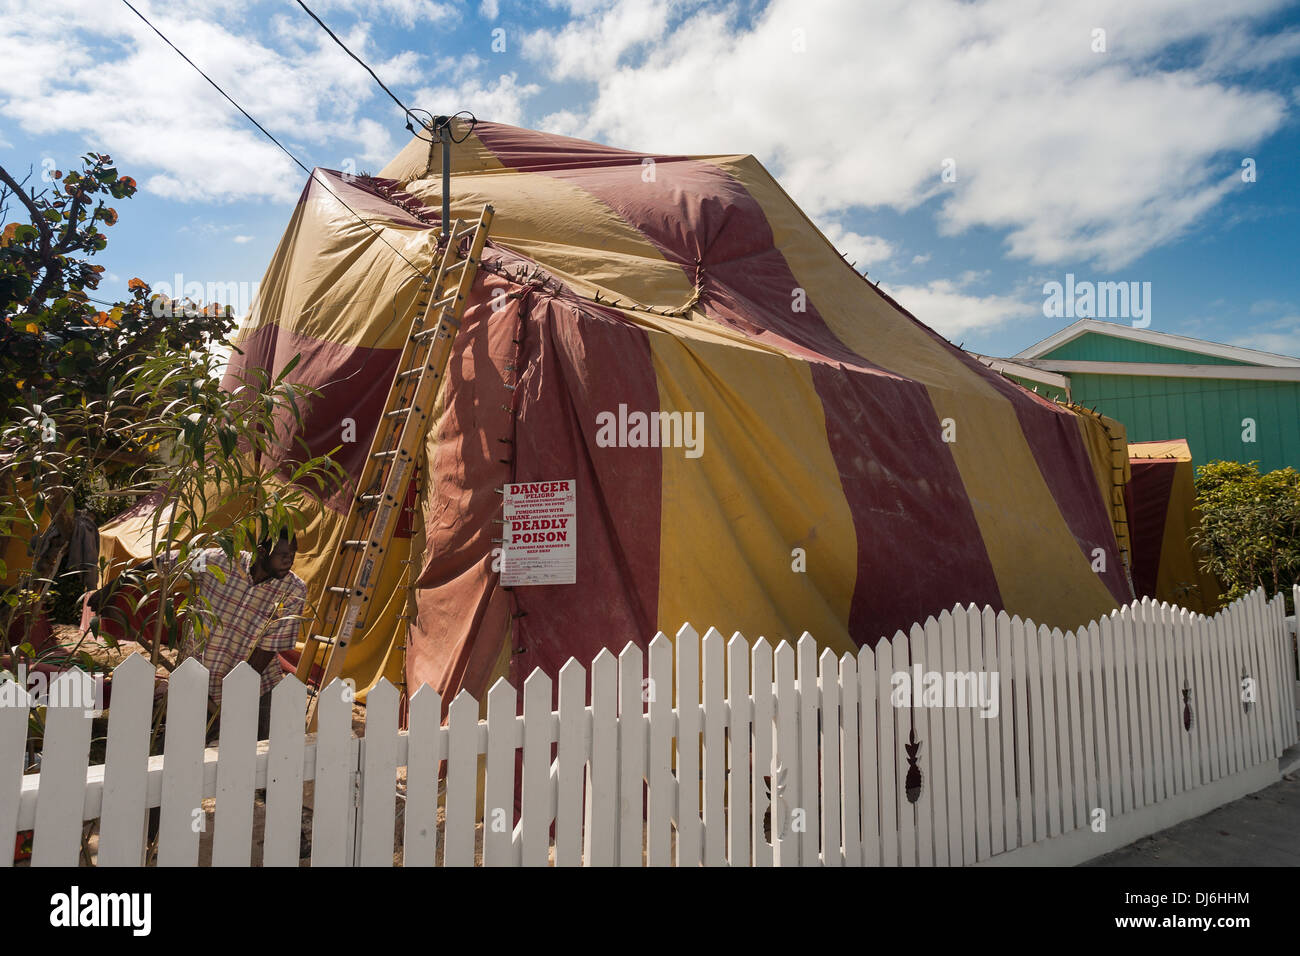 A worker sets up a tent to Fumigate a house. A colourful tent is set up to contain the poison gases used to kill an infestation - Stock Image